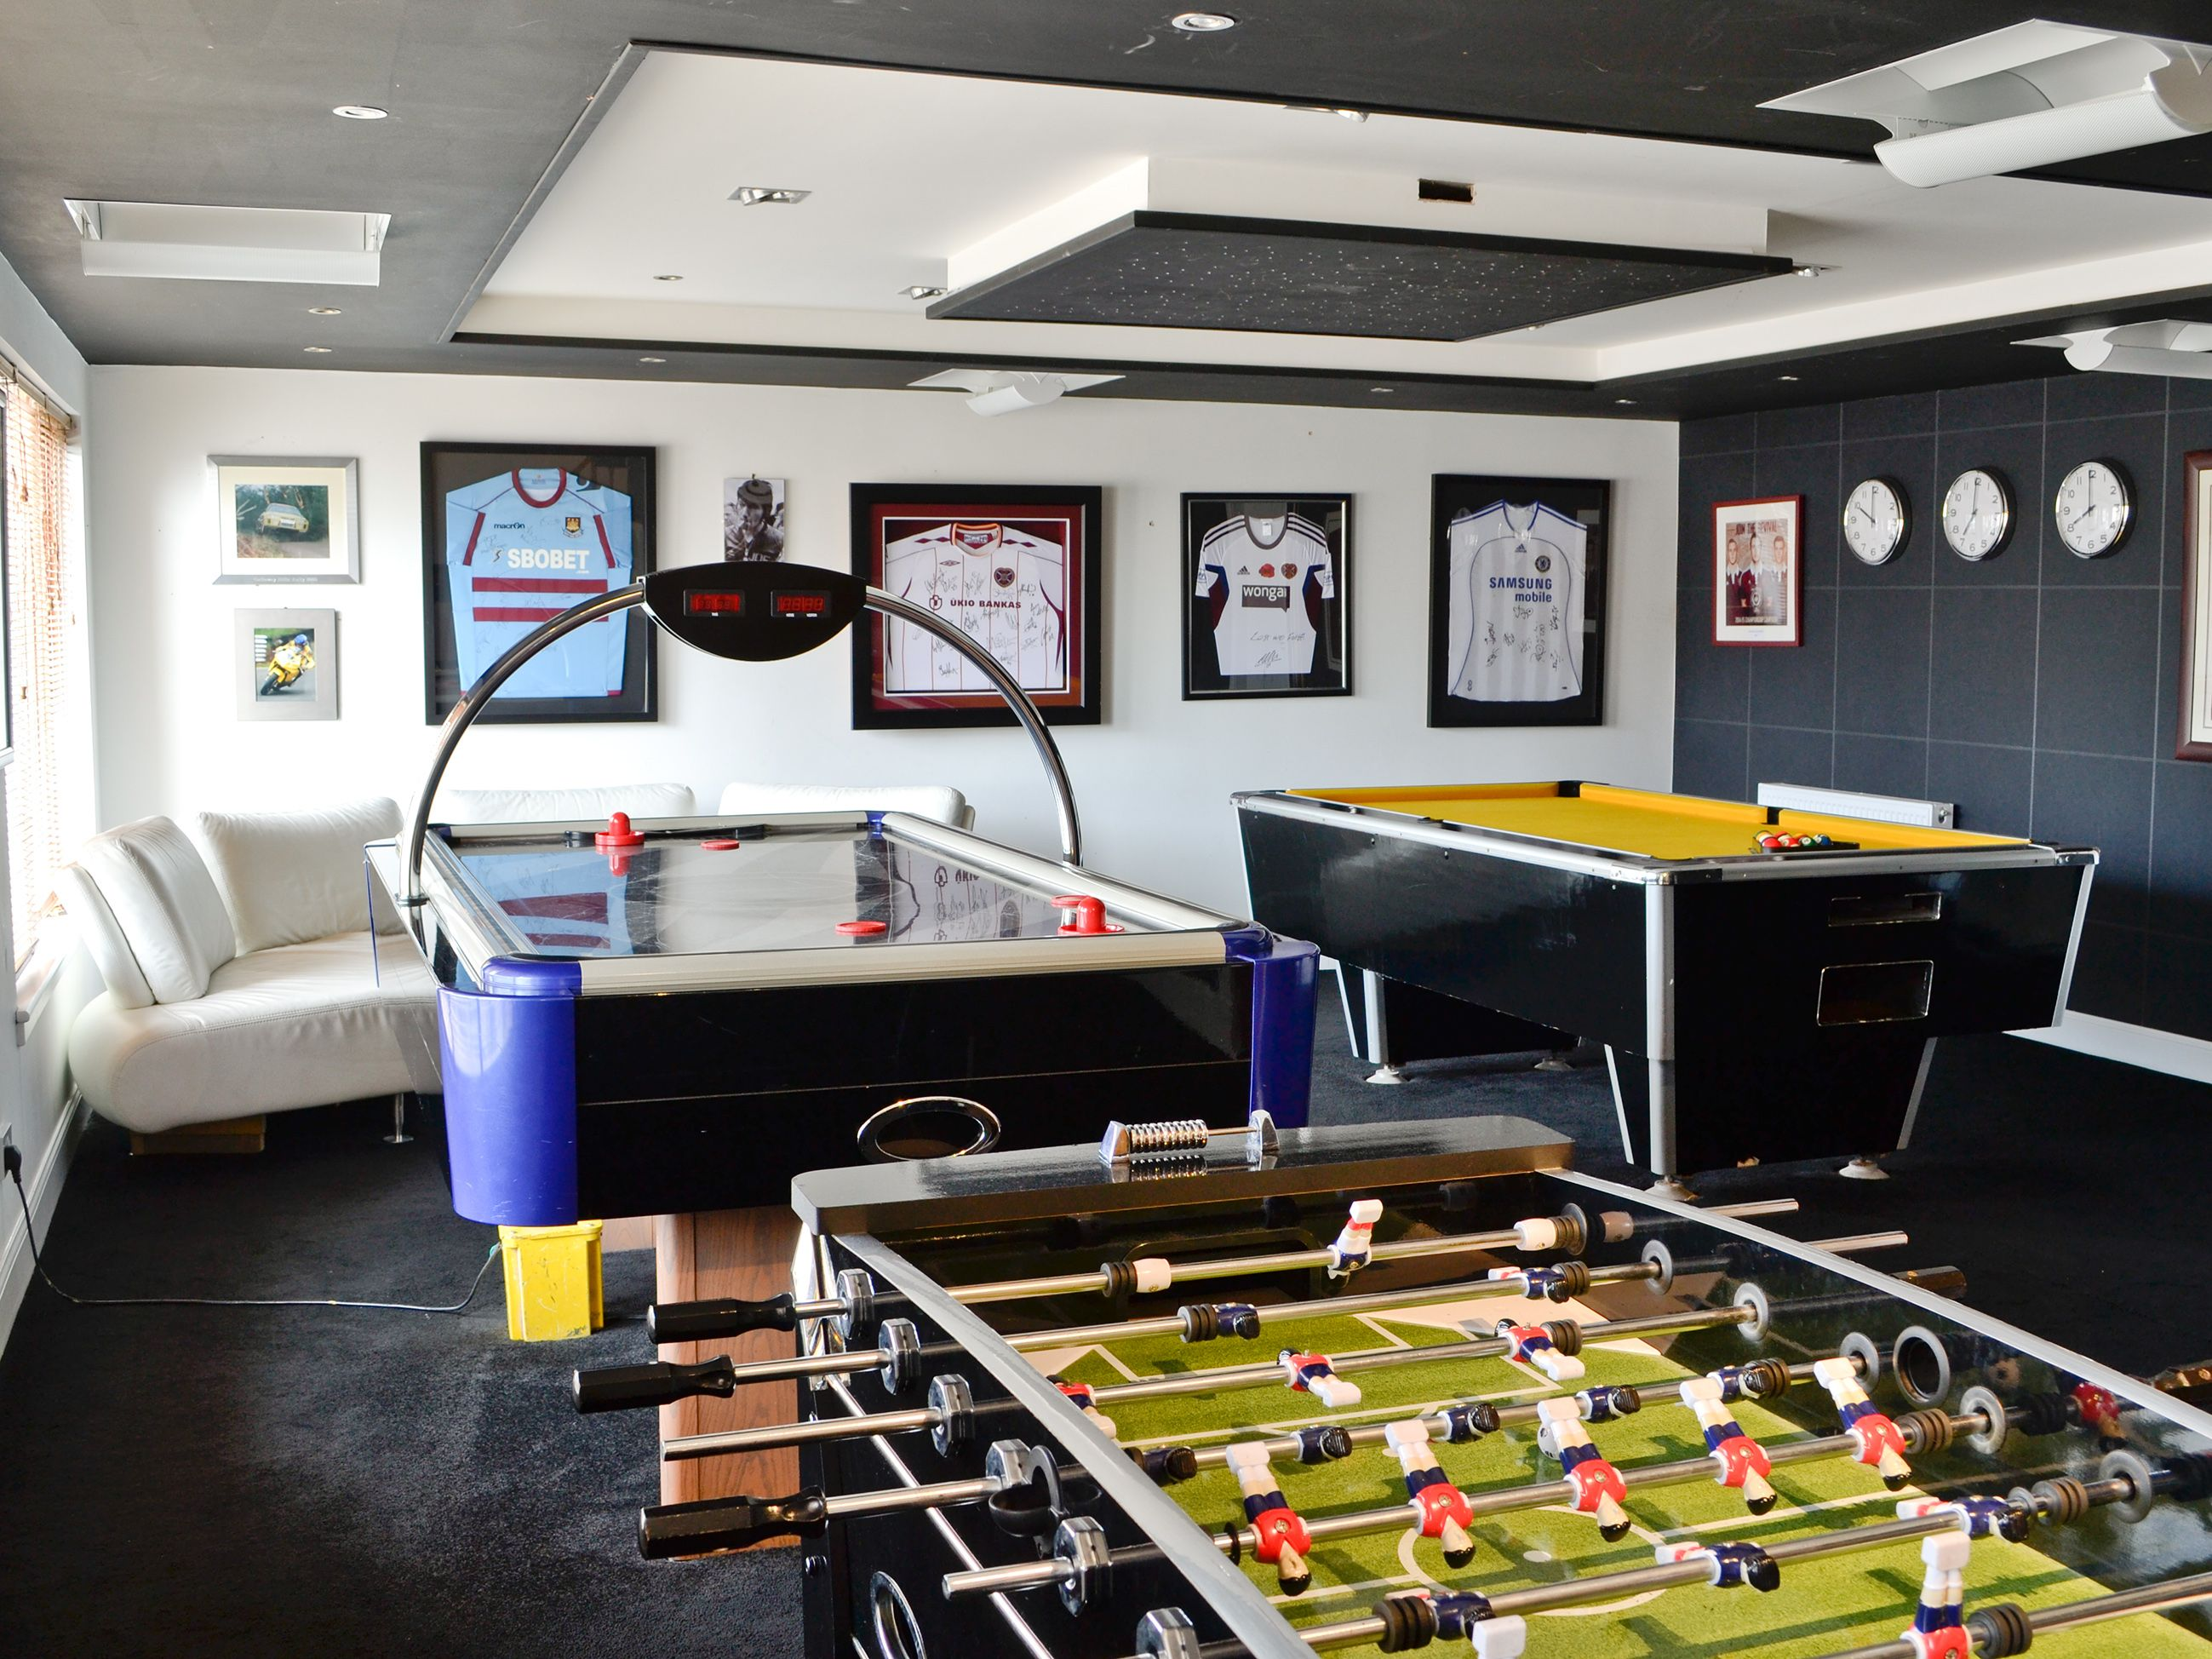 Basement kids game room - Games Room With Pool Table Table Football And Air Hockey For Endless Entertainment Kids Basementkid